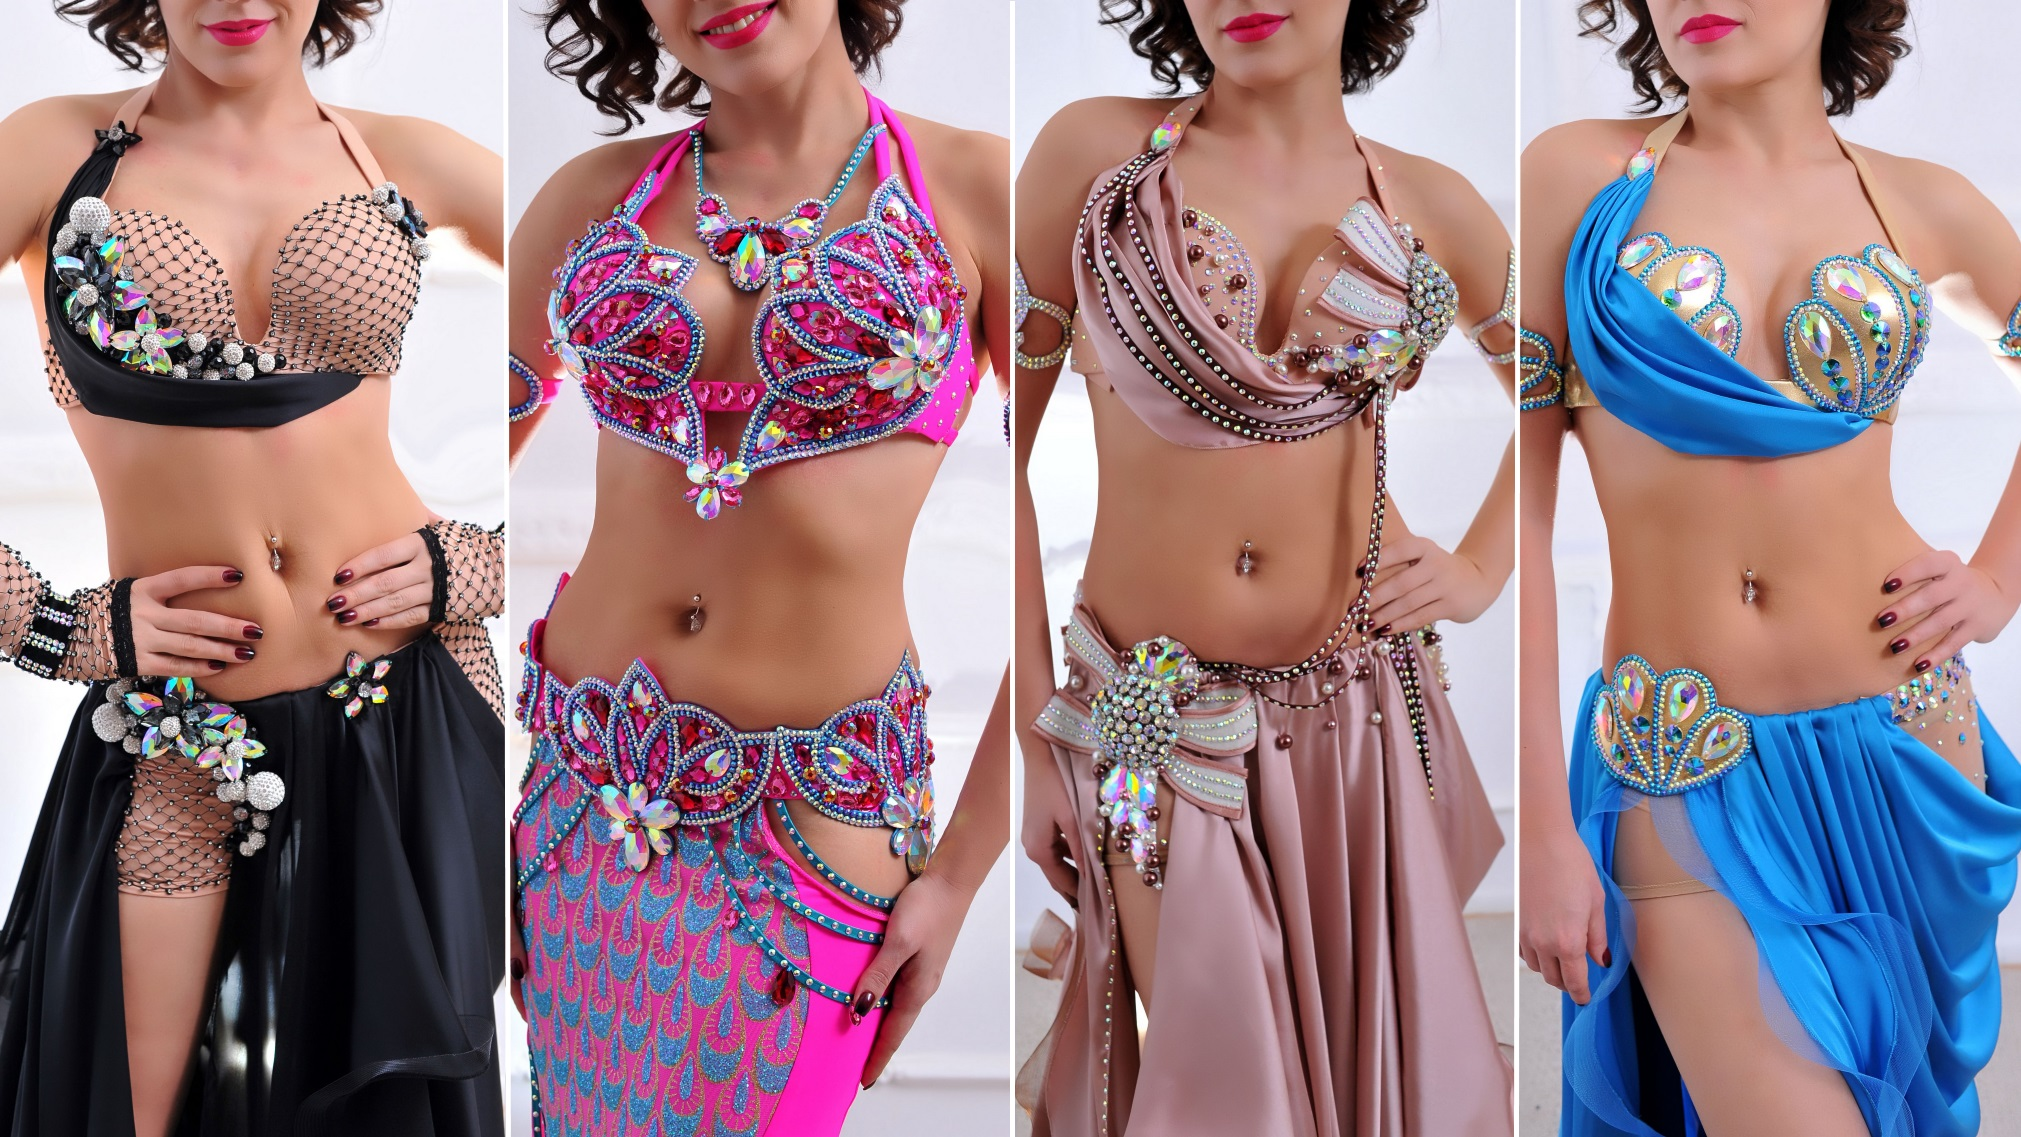 aida style new january 2018 designers belly dance costumes collection